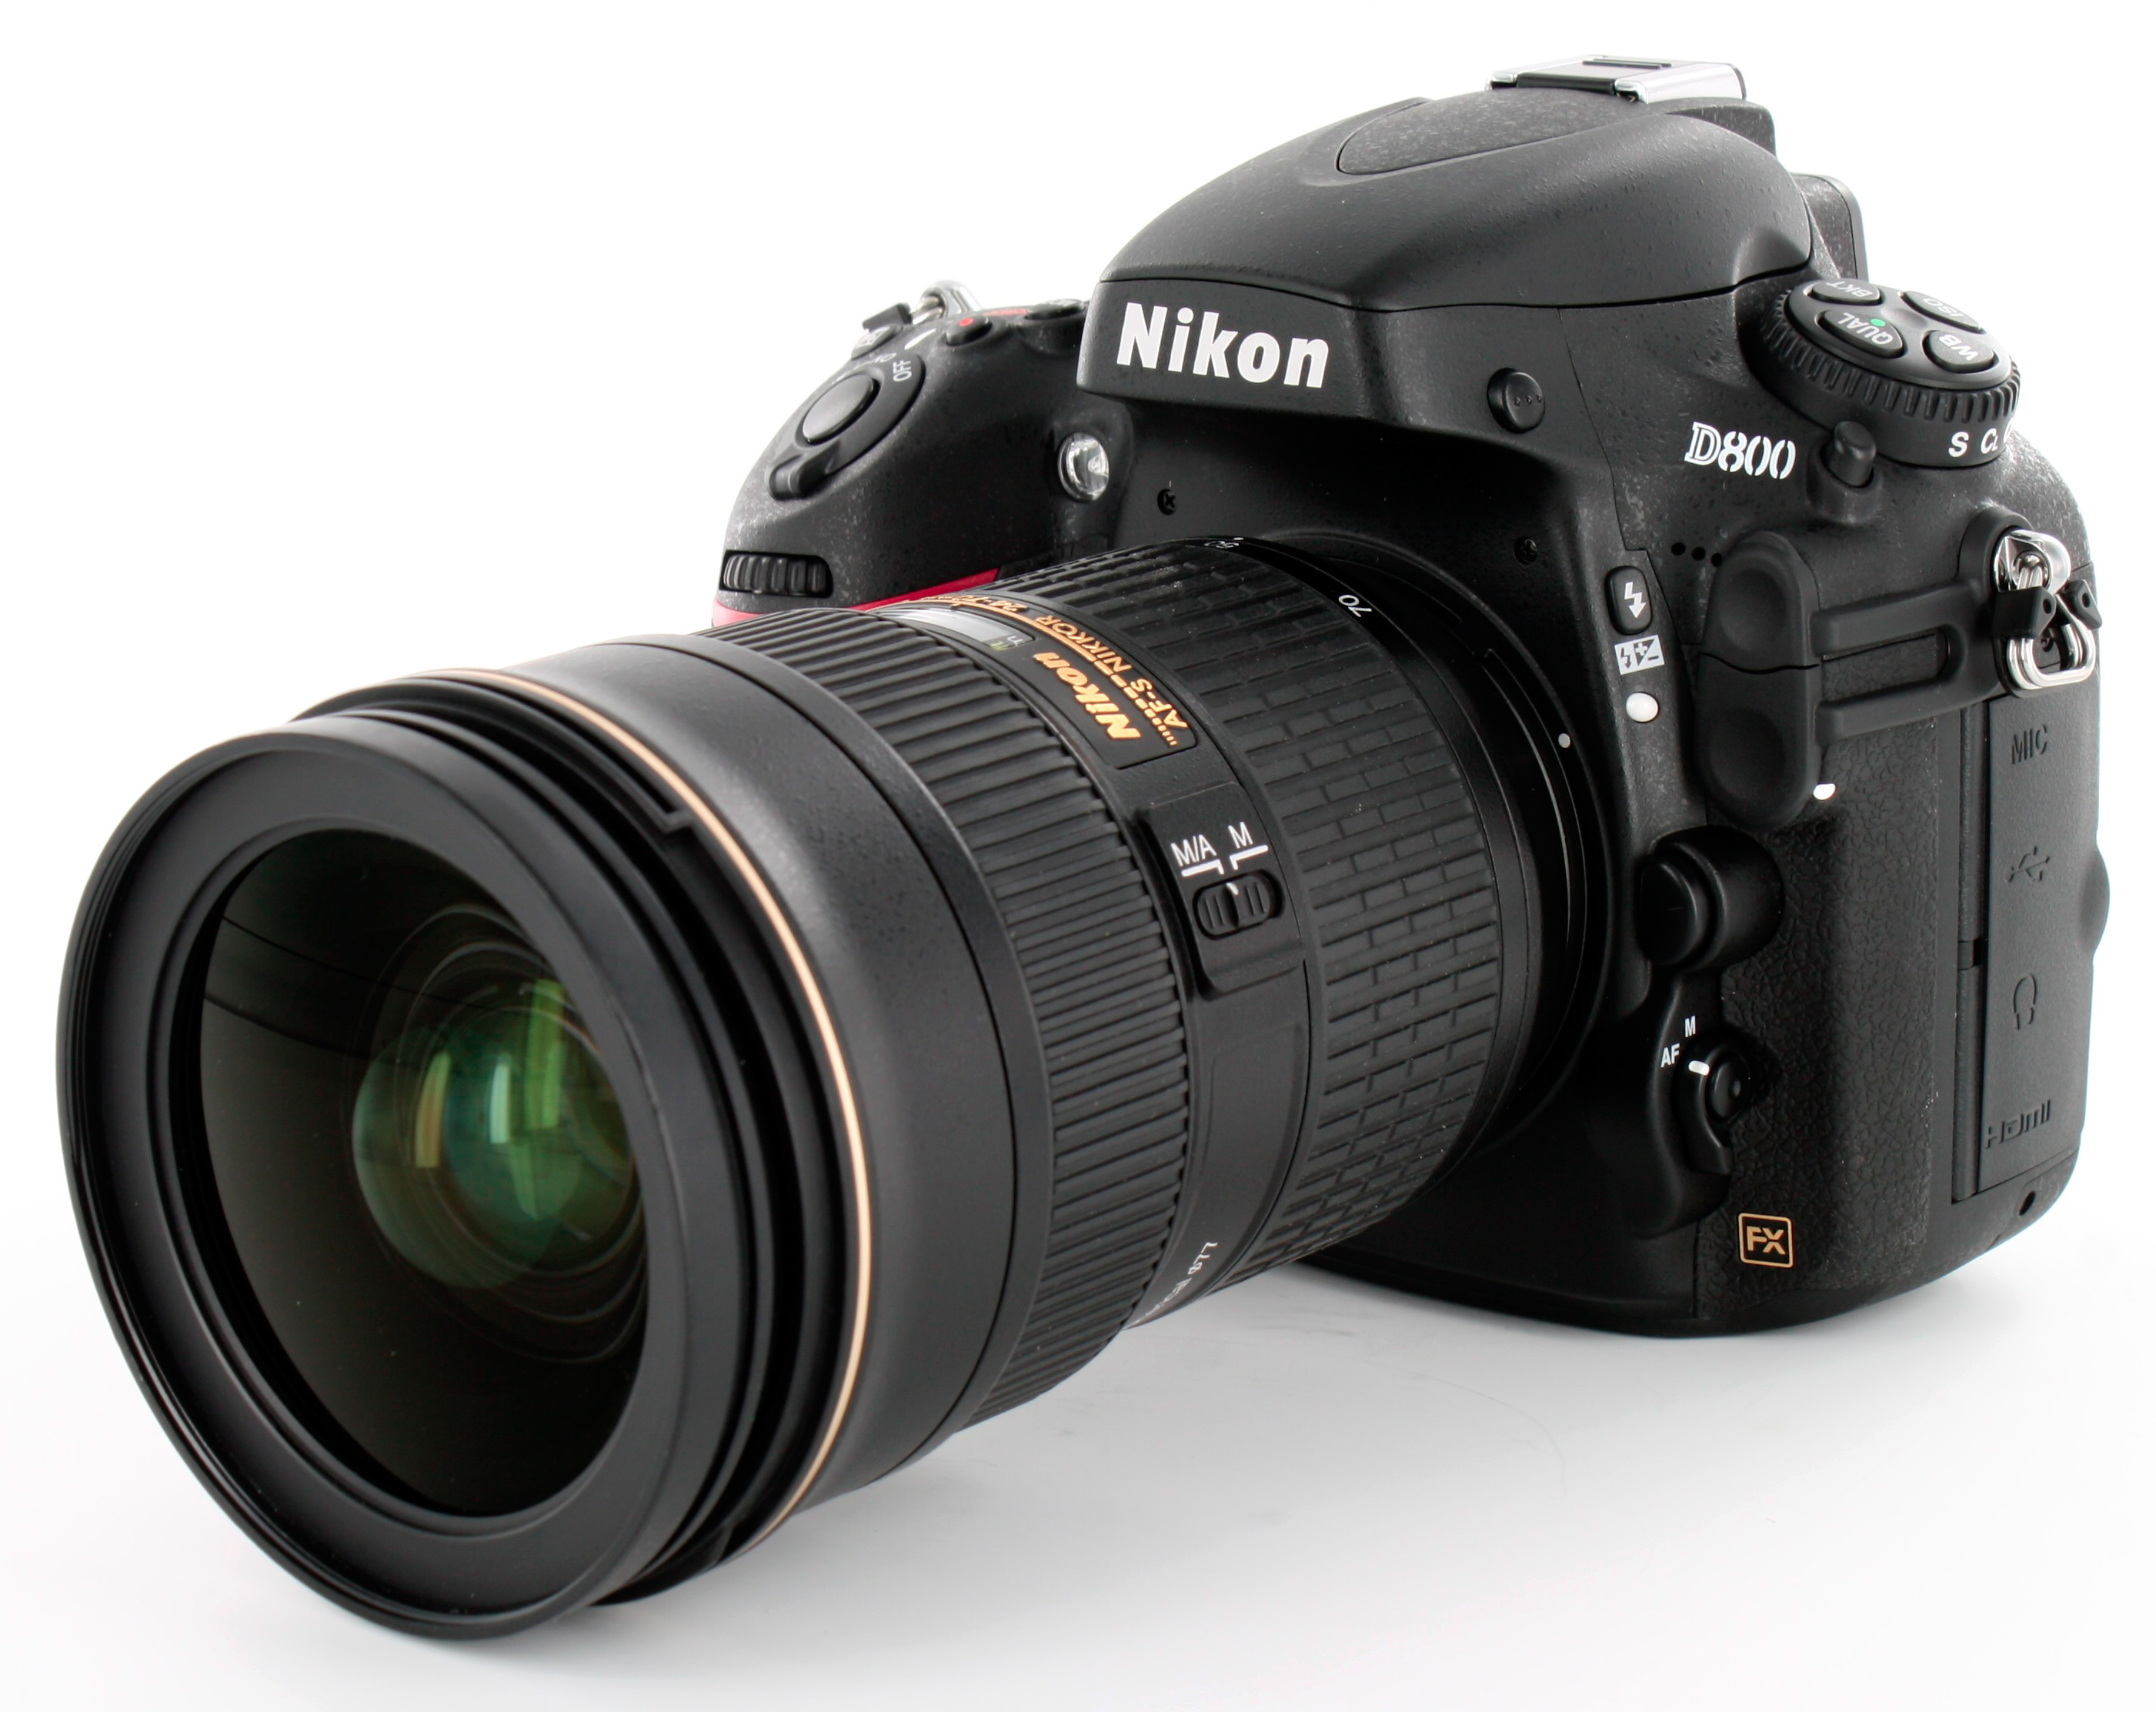 Nikon D800/D800E Firmware Update 1 10 now Available – Camera News at